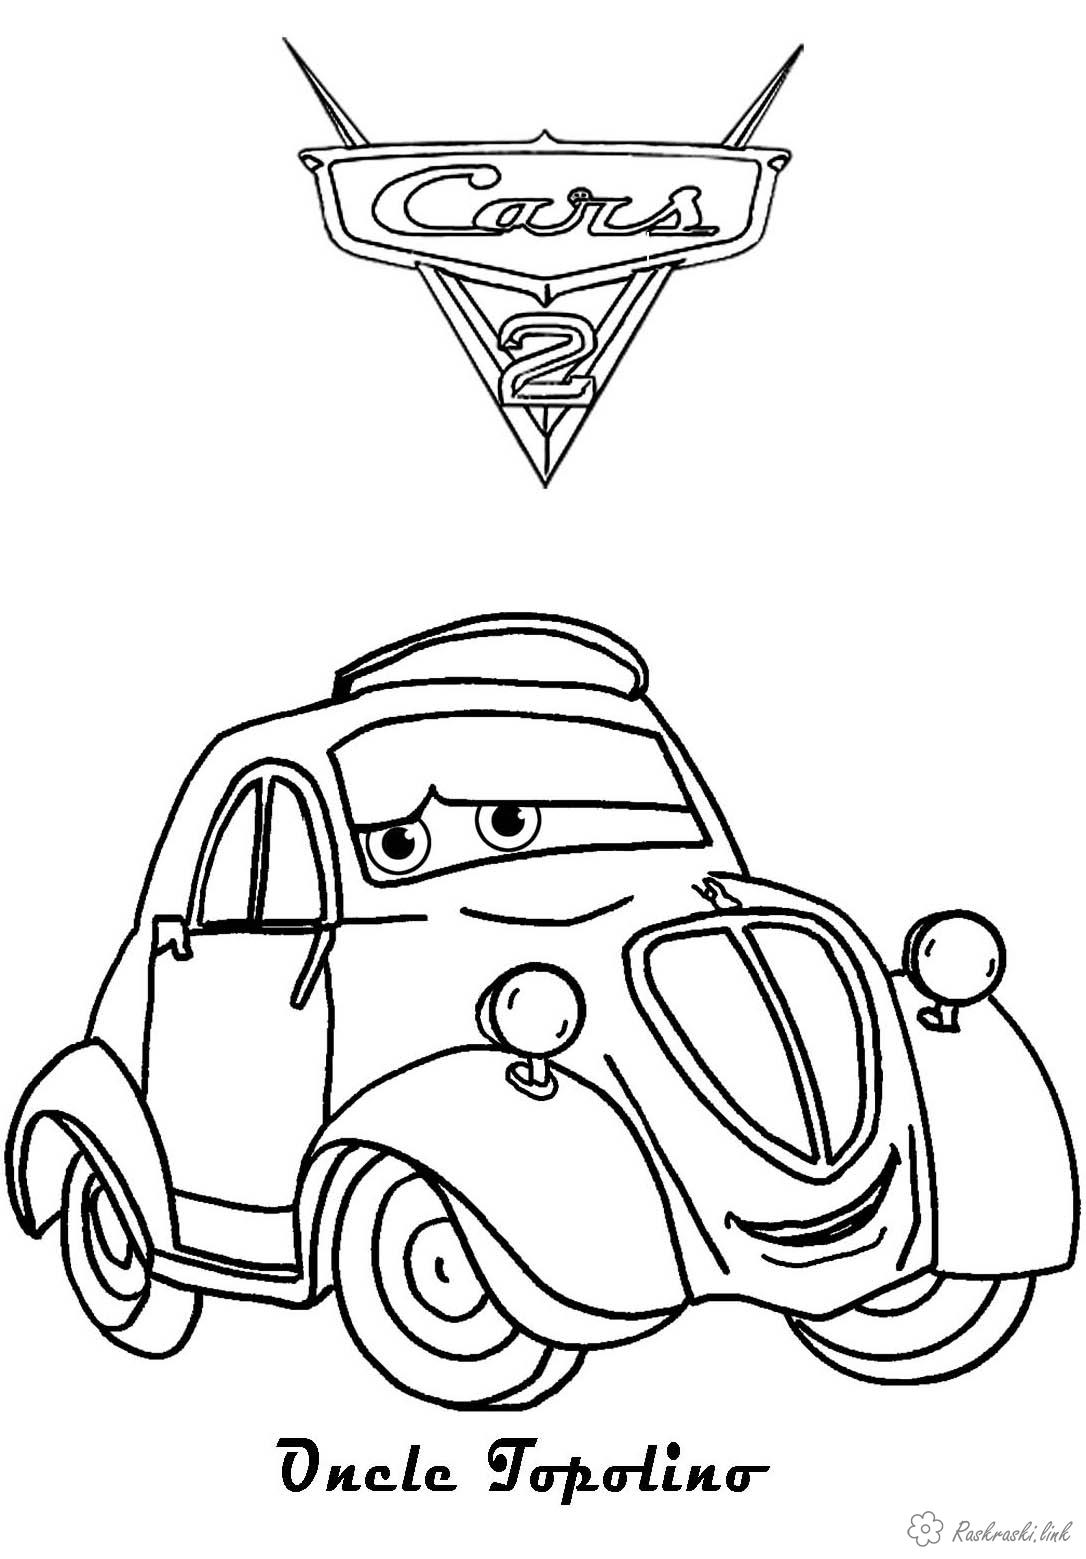 Coloring cars 2 Cars 2, the beetle coloring pages